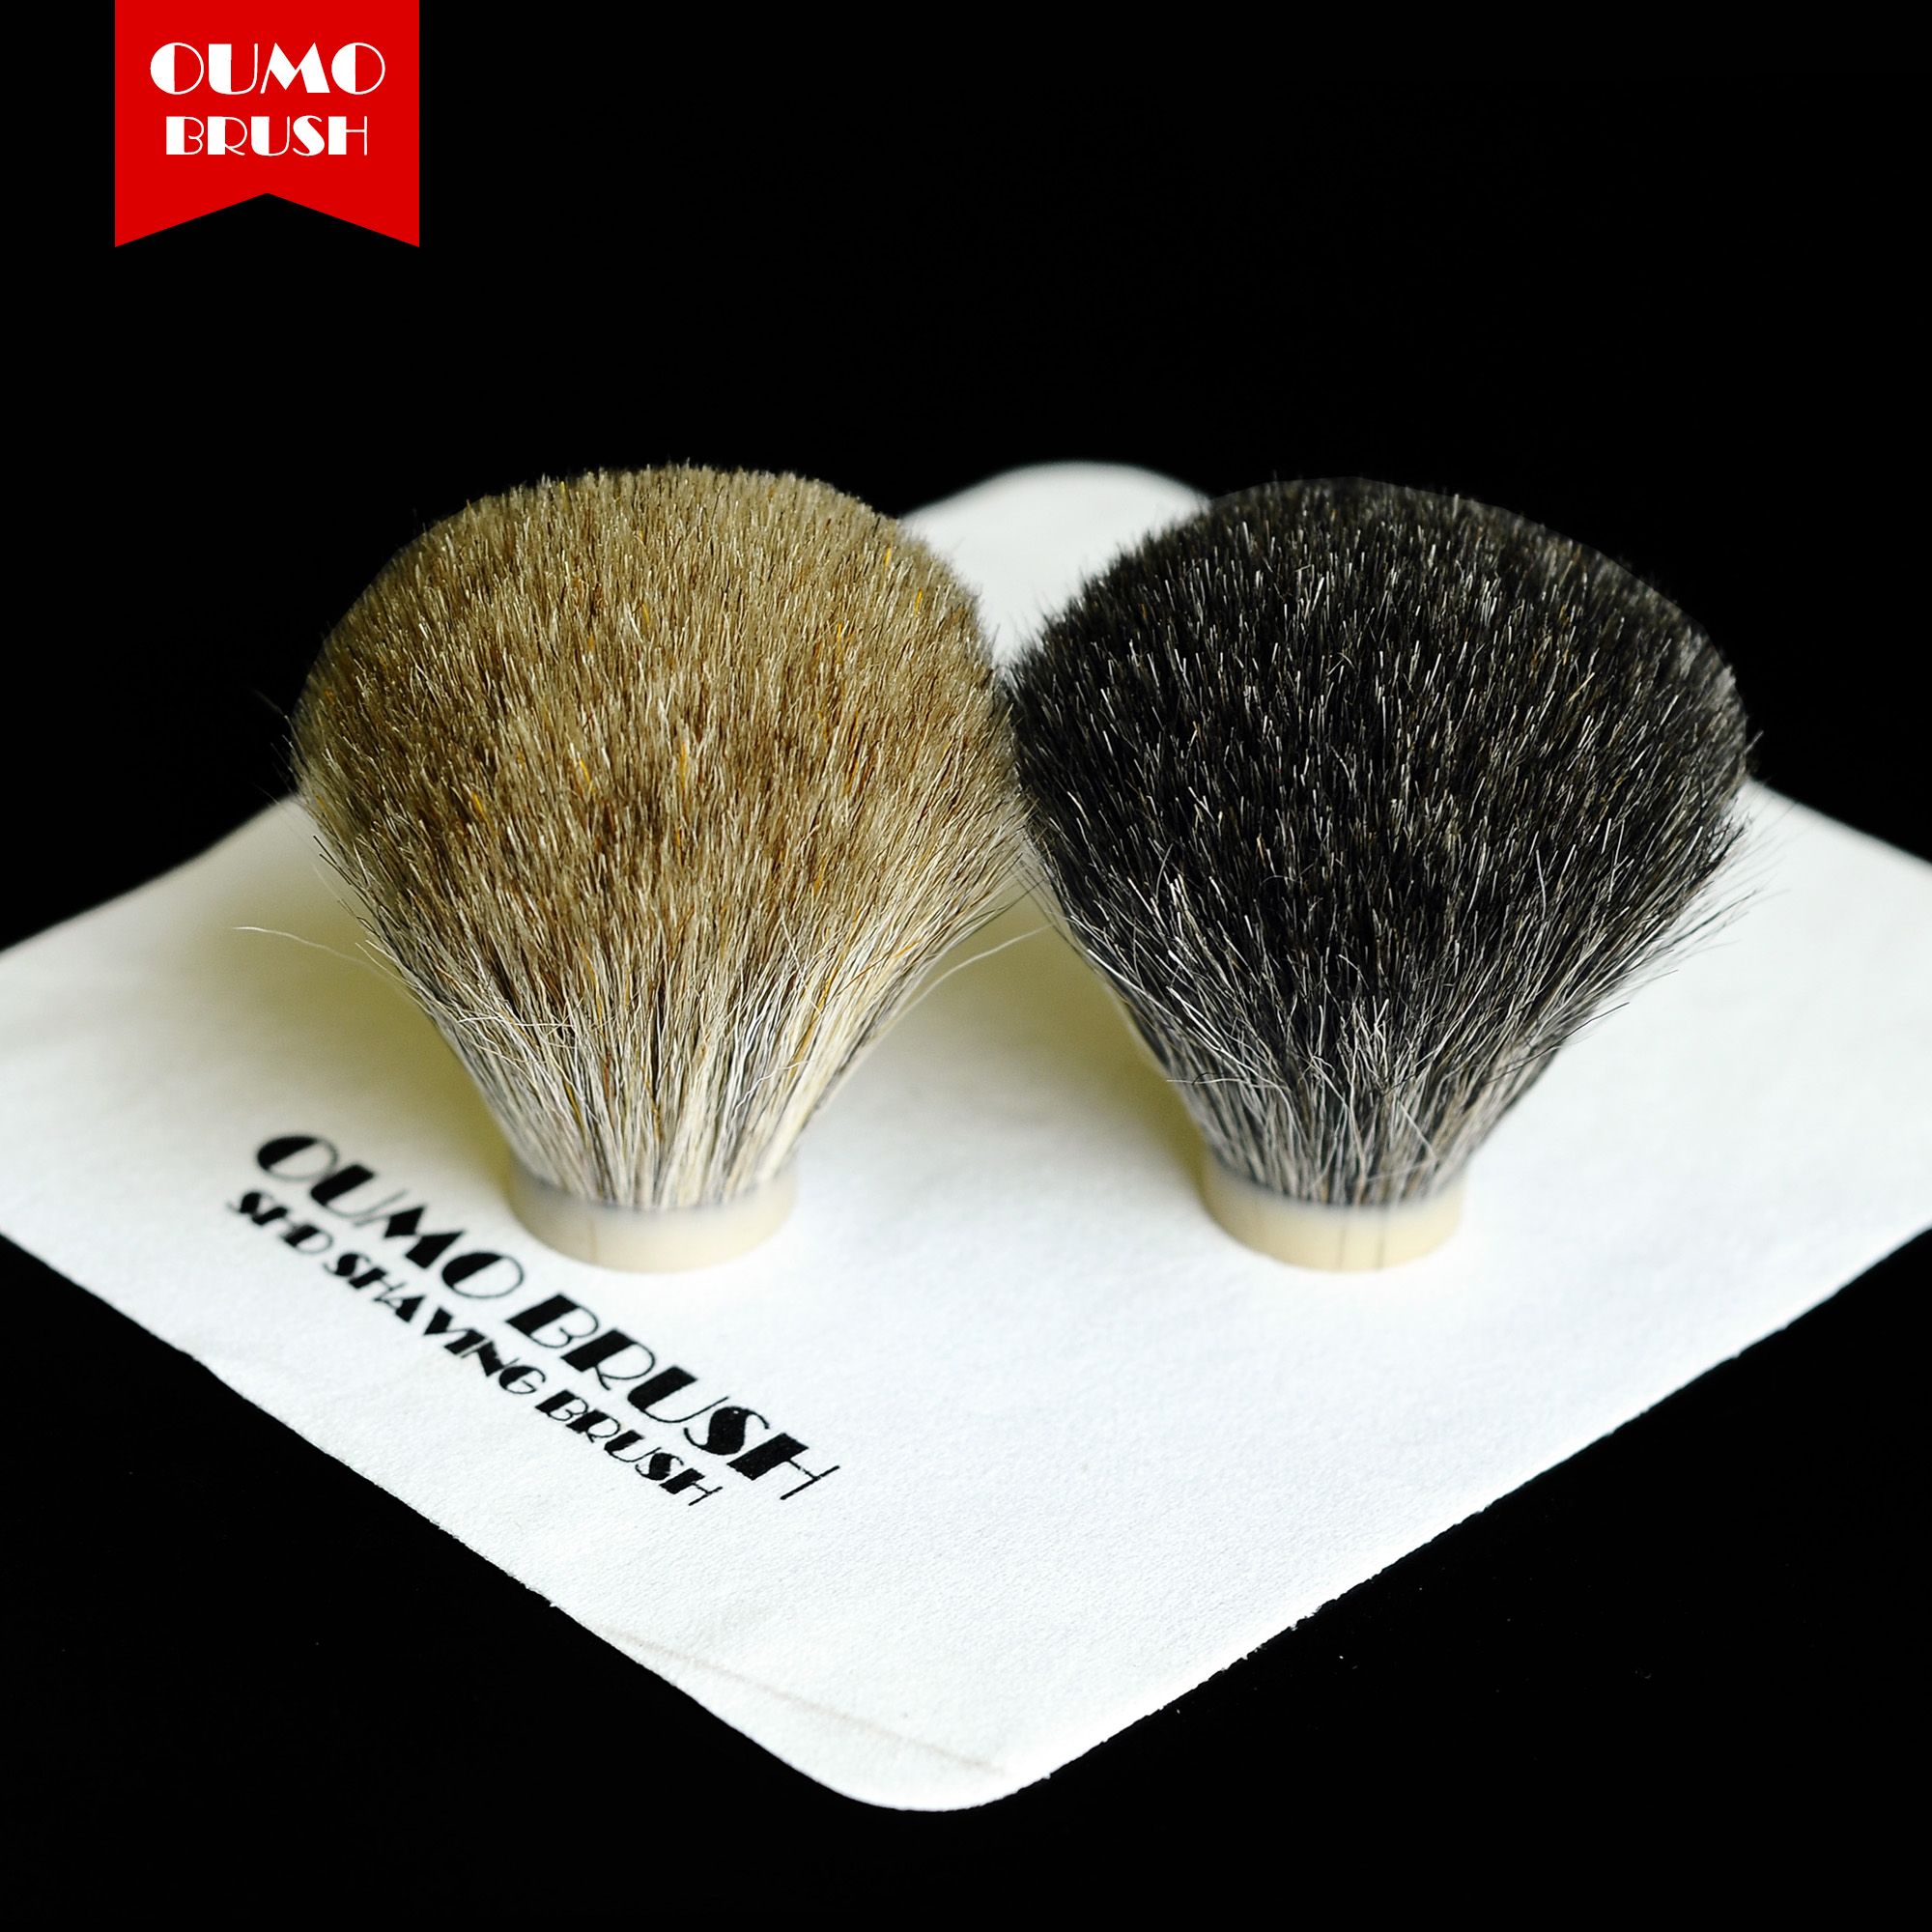 OUMO BRUSH-HORSE HAIR SHAVING BRUSH KNOTS